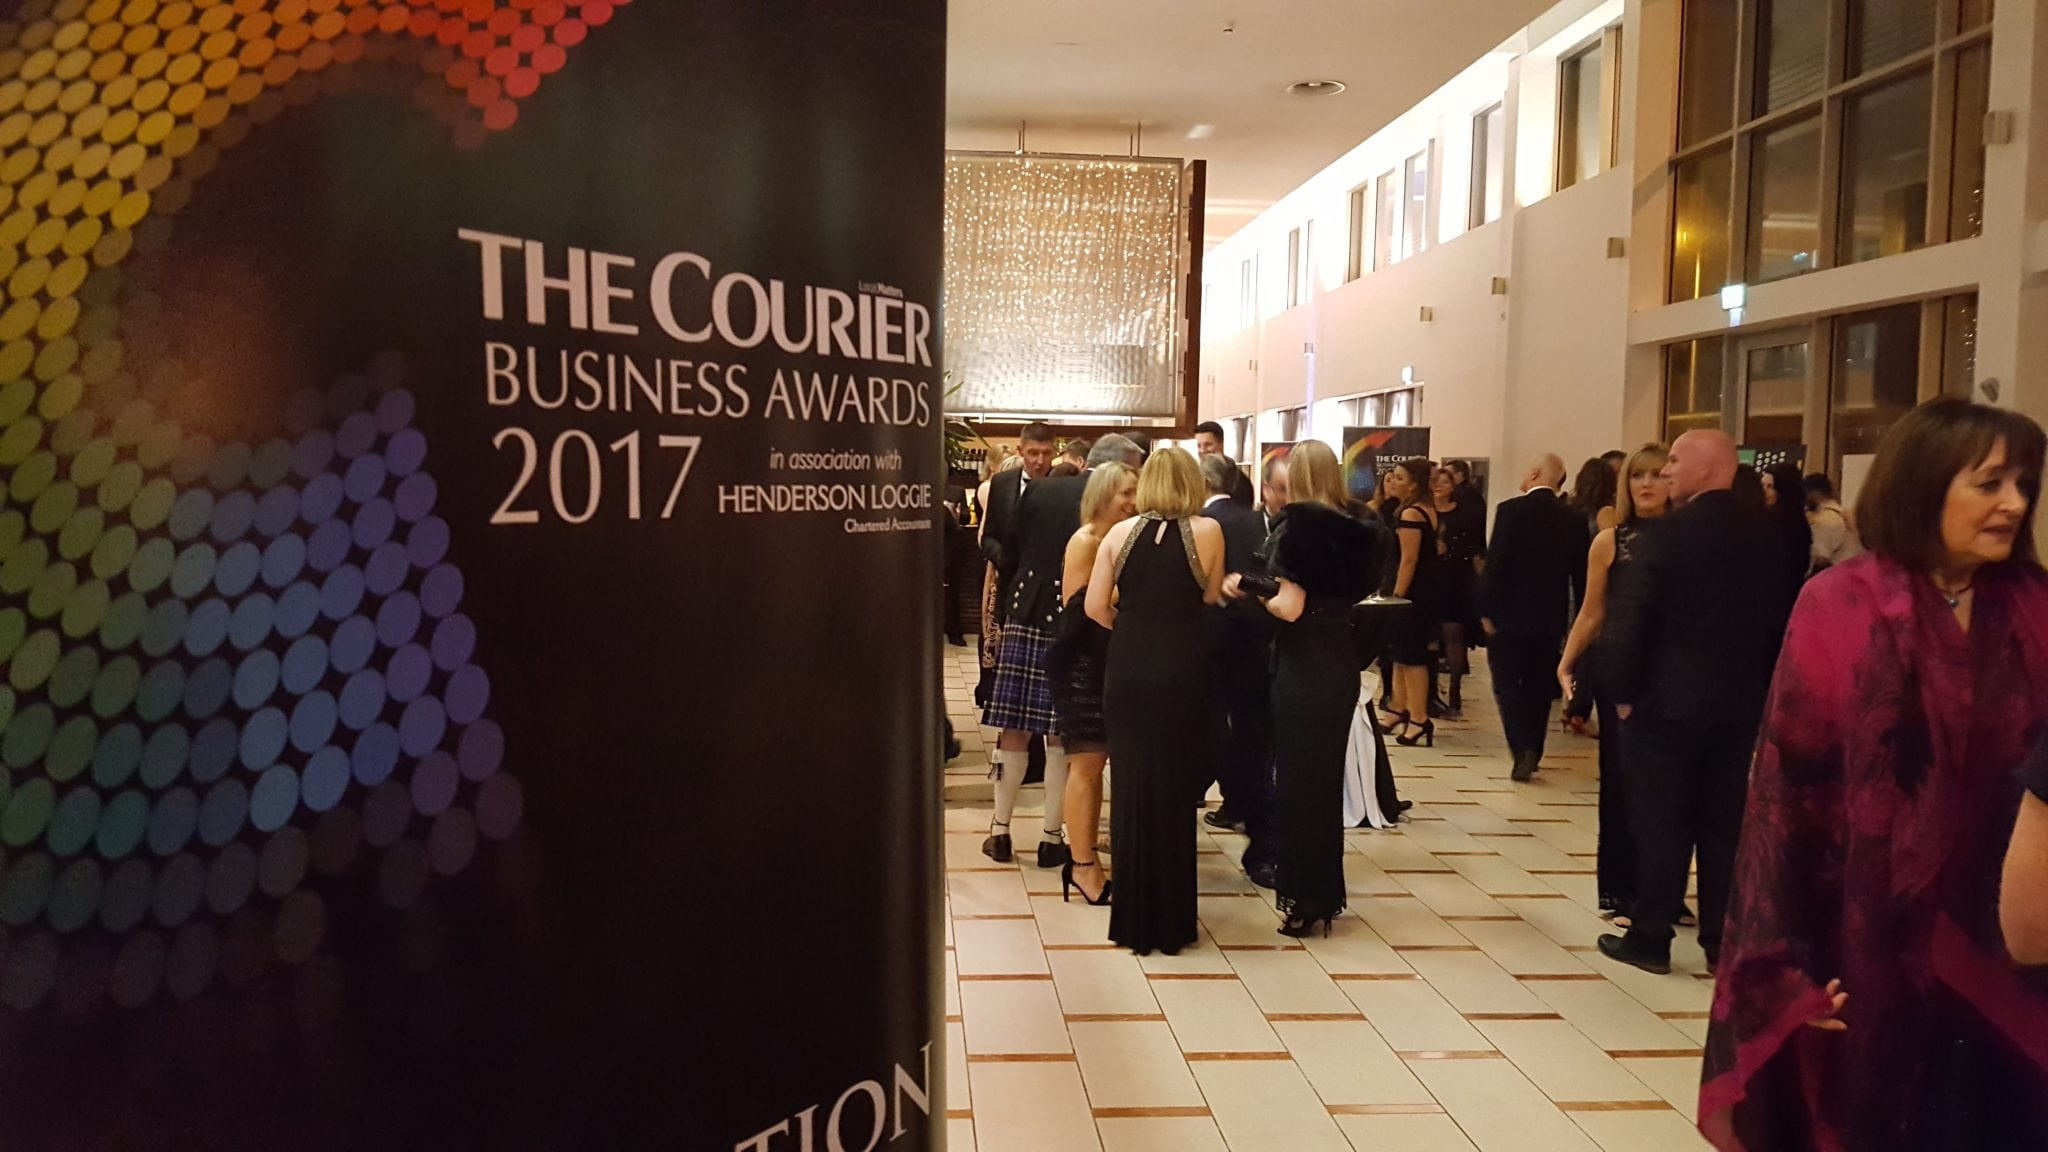 Courier Business Awards 2017